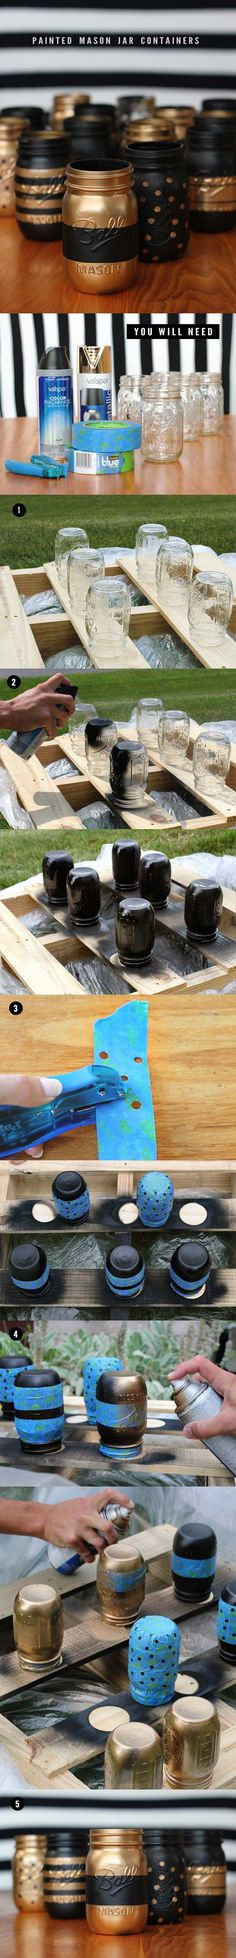 DIY Makeup Storage and Organizing - Painted Mason Jar Makeup Storage - Awesome Ideas and Dollar Stores Hacks for Some Seriously Great Organizers For Small Spaces - Box and Vanity Ideas as well as Easy Ideas for Jars and Drawers, Cheap Wall Shoebox Containers and Quick Holders with Cardboard - thegoddess.com/DIY-Makeup-Storage